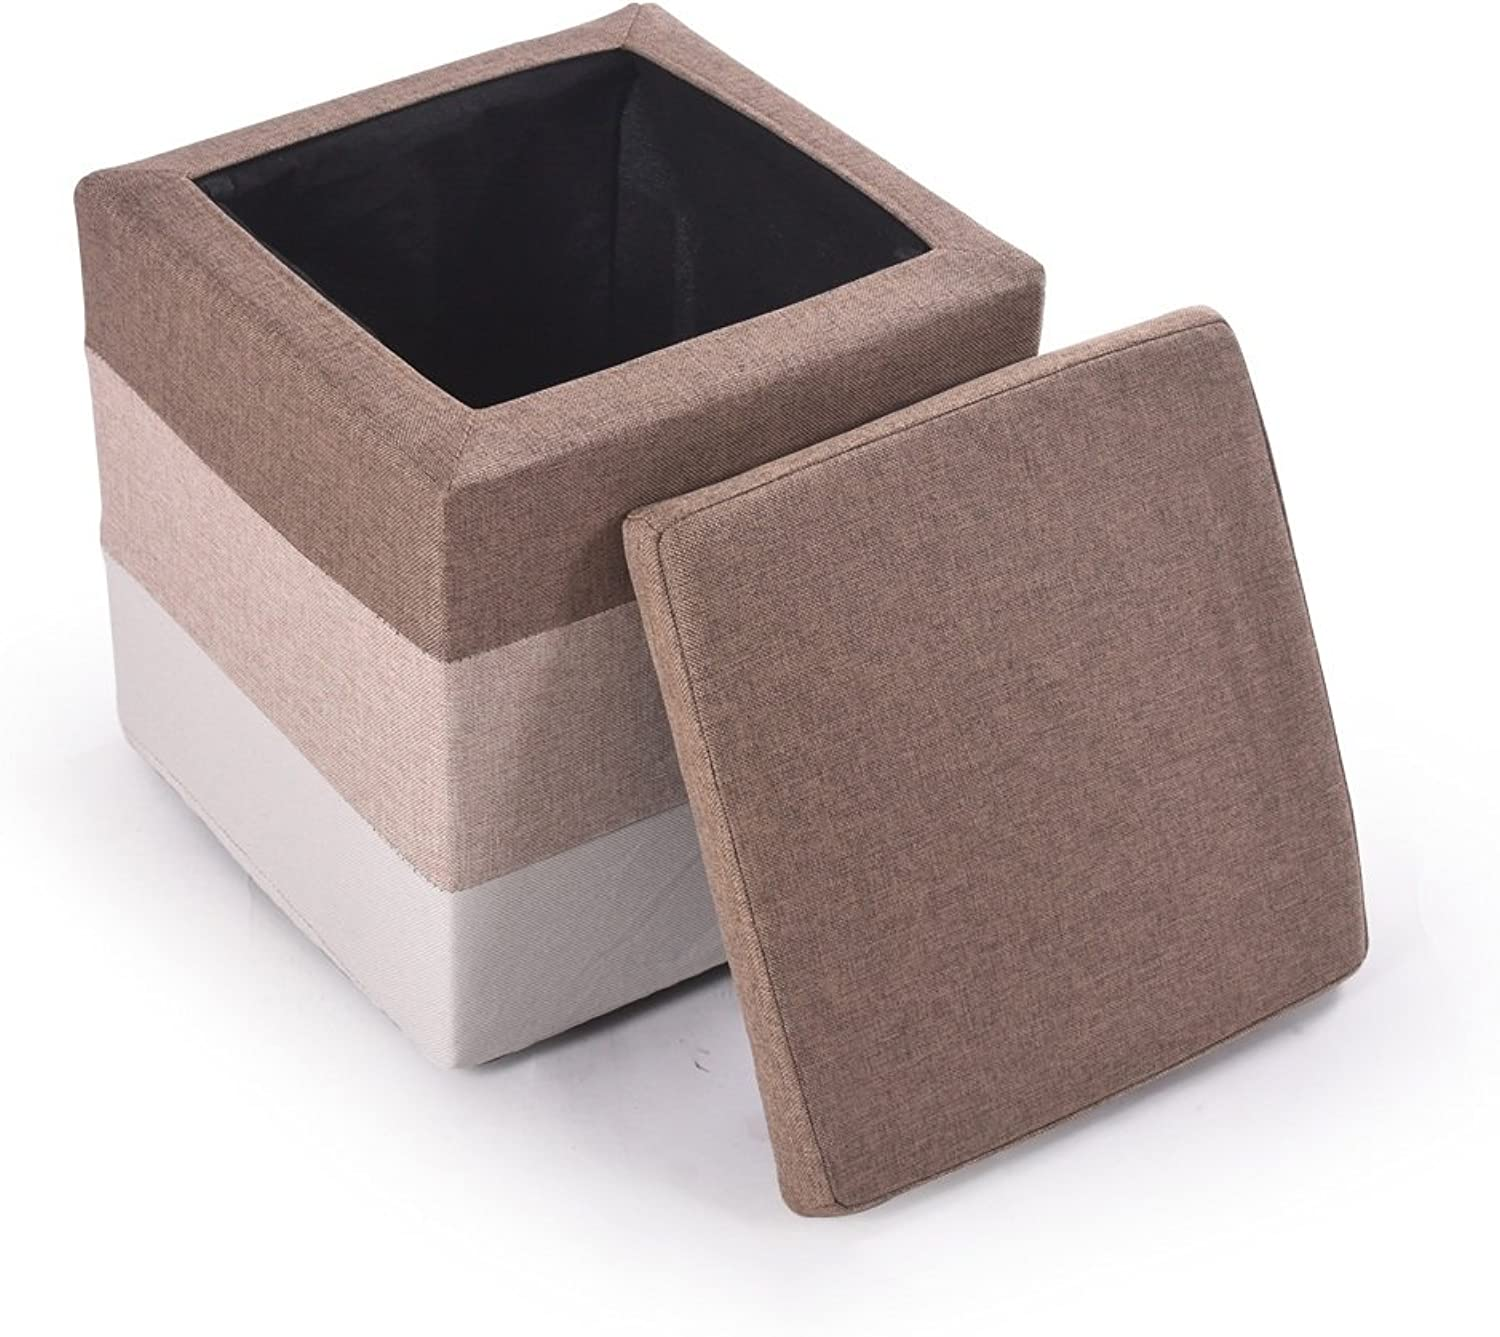 XRXY Creative Footstool   Cloth Sofa Stool   Changing His shoes Stool   Simple Storage Stool (4 colors available) ( color   A )